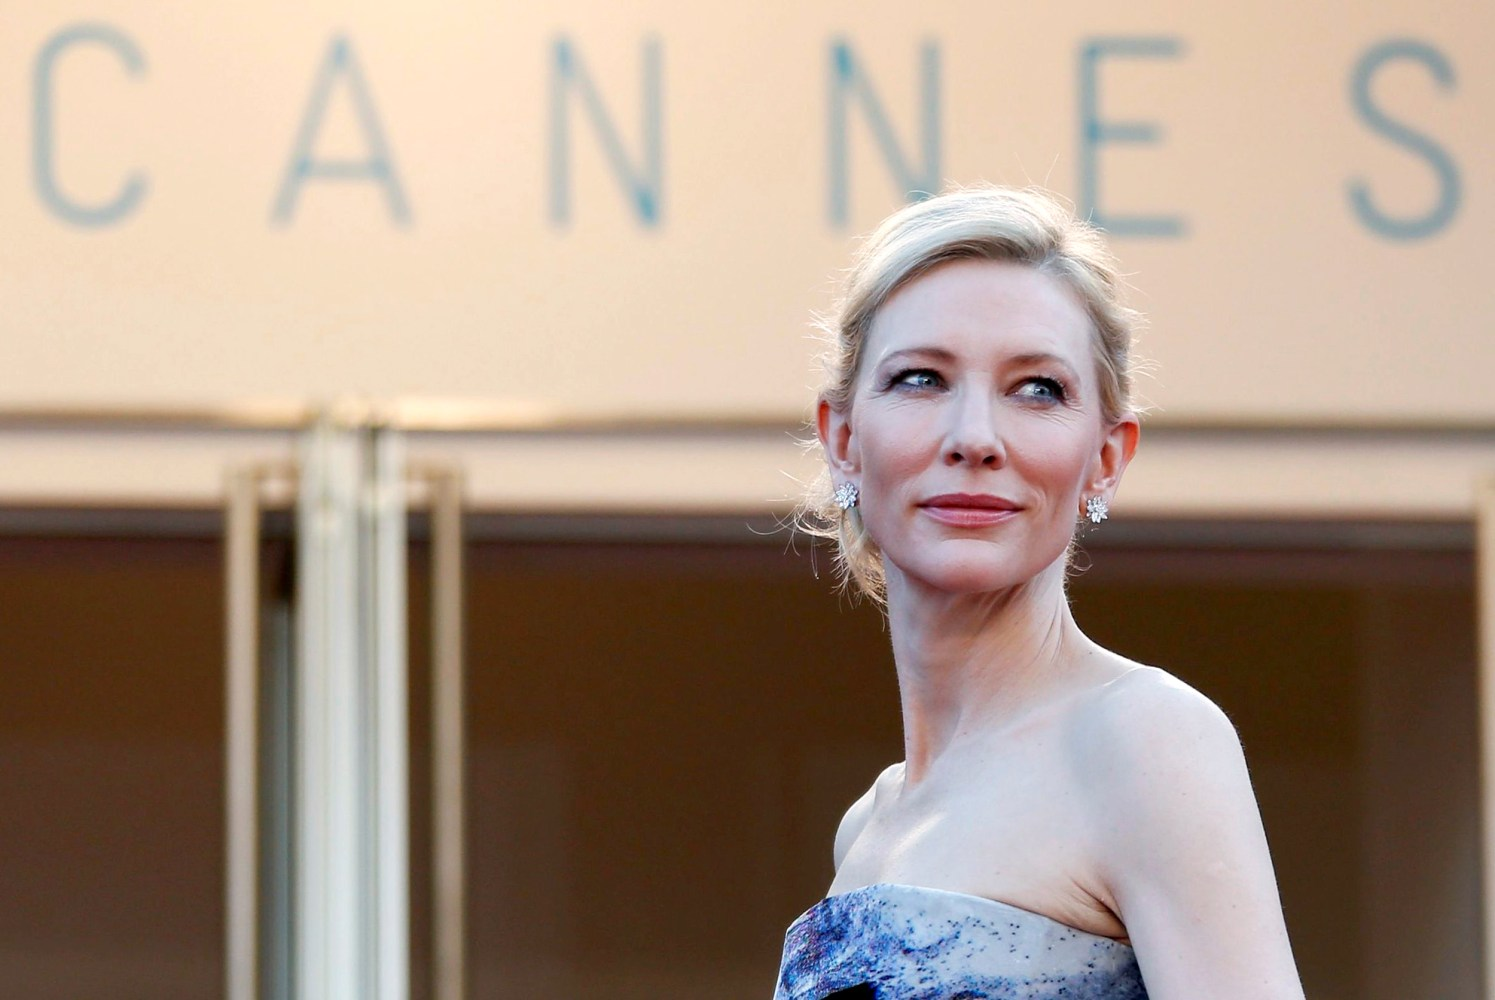 Cannes Elects Cate Blanchett to Steer Jury at a Crucial Moment